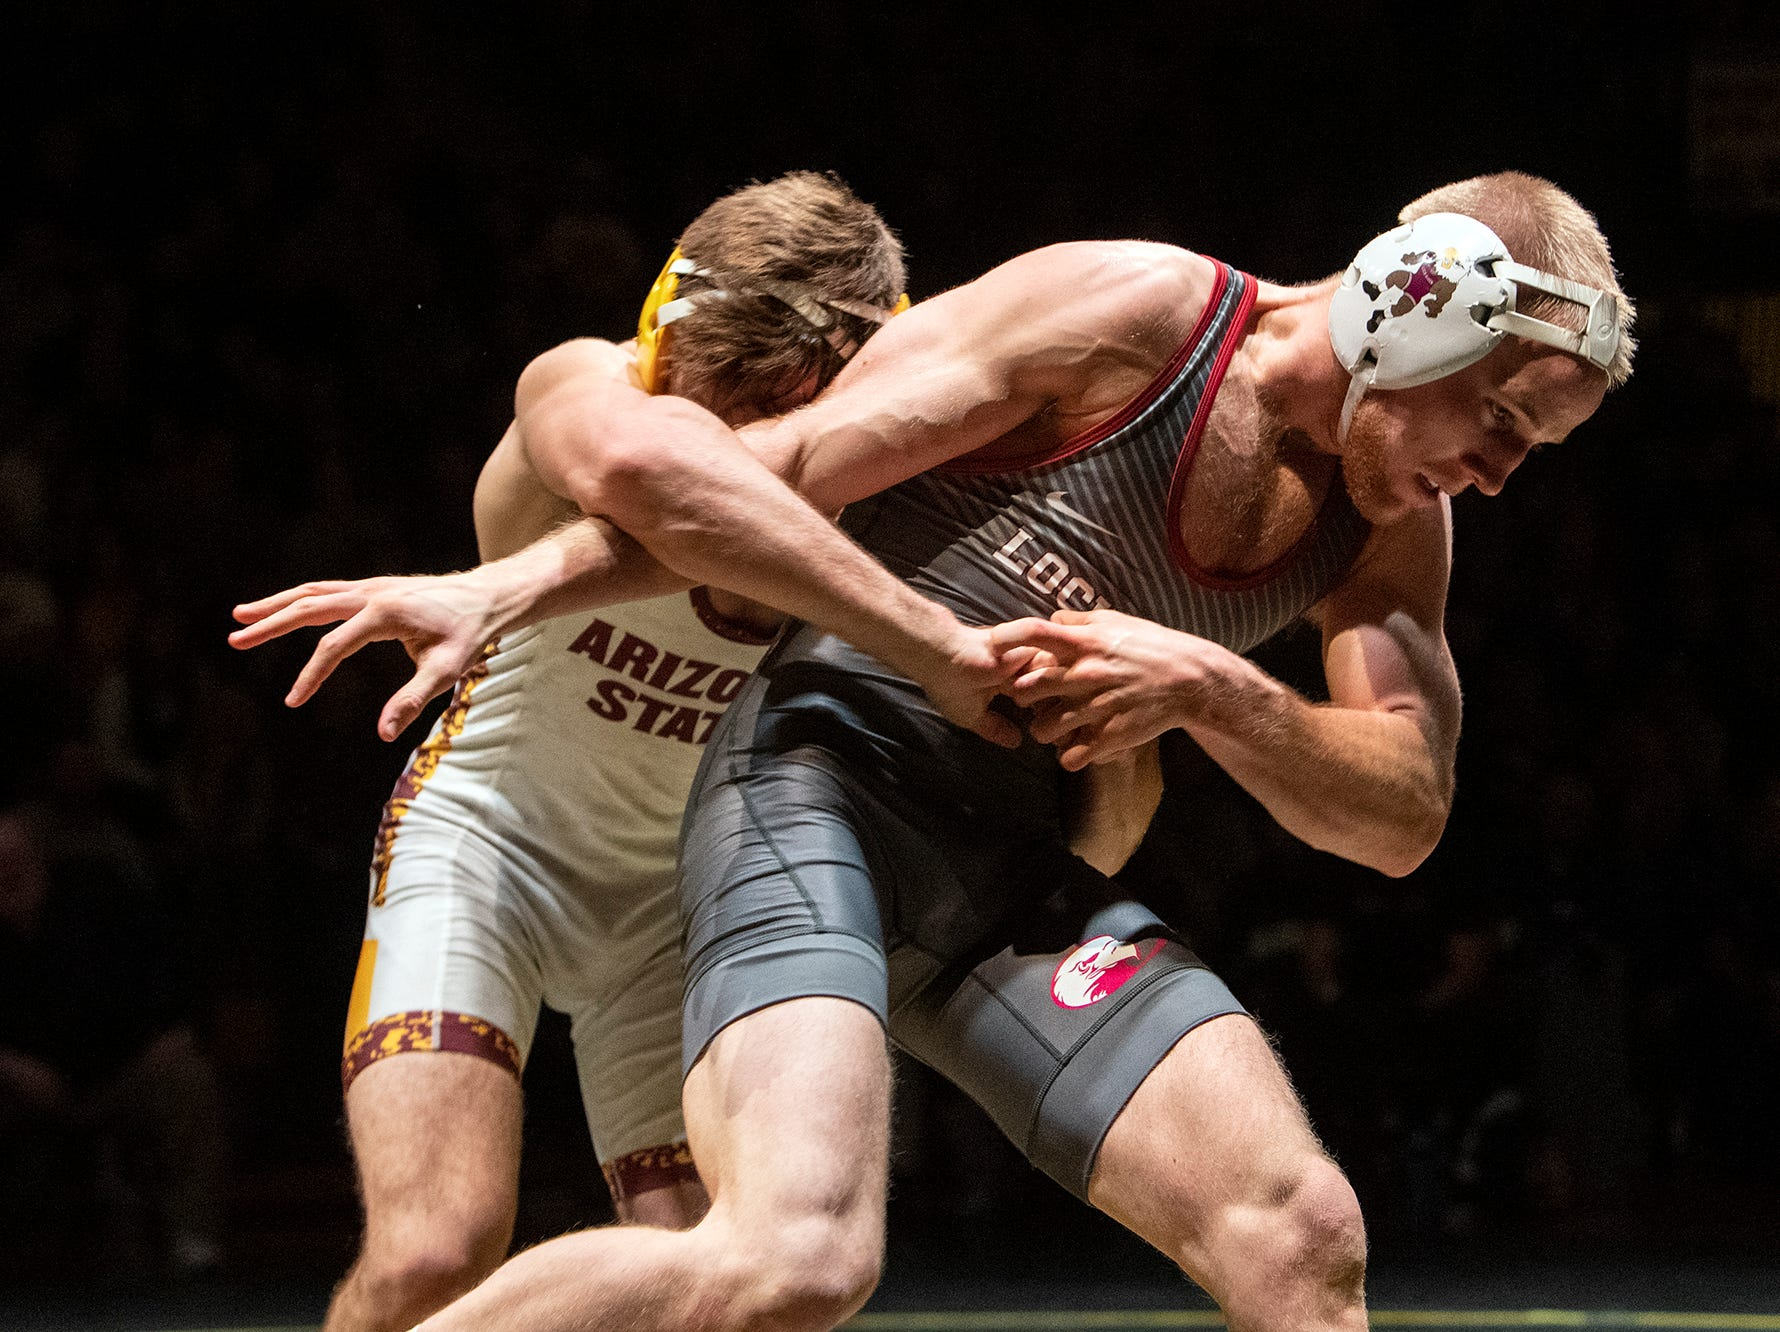 Lock Haven's D.J. Fehlman, right, works to escape Arizona State's Josh Kramer during the 133-pound bout at Red Lion's Fitzkee Athletic Center on Friday, Jan. 25, 2019. Fehlman beat Kramer 6-4 as No. 22 Lock Haven upset No. 12 Arizona State, 23-14, in the first ever 'Rumble in the Jungle.'